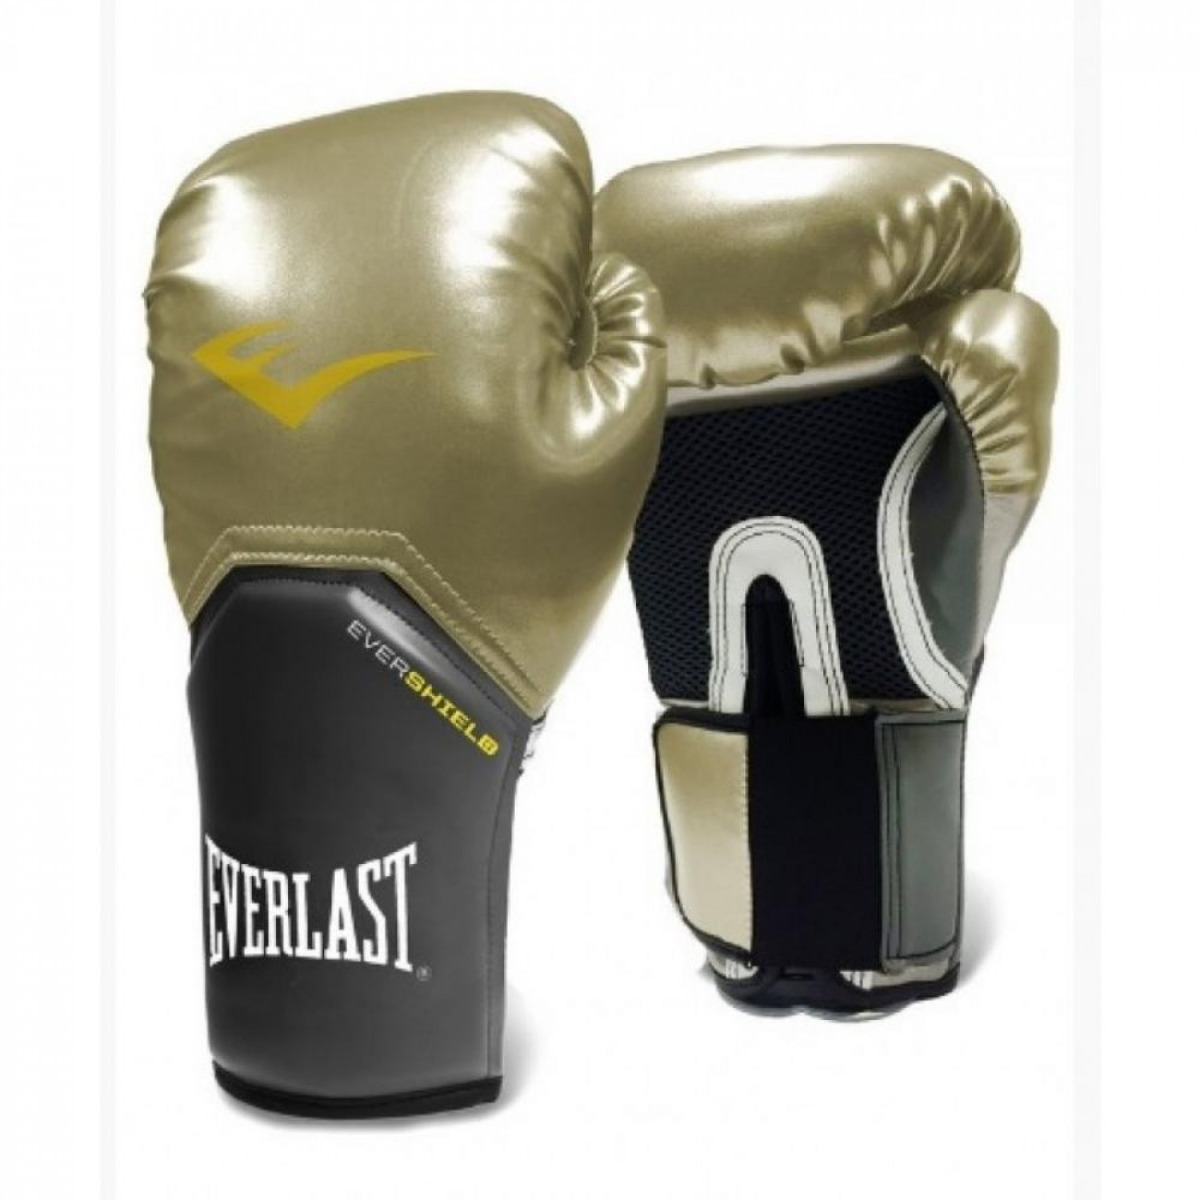 fdcdca2b27 luva boxe everlast pro style elite training 10 oz dourada. Carregando zoom.